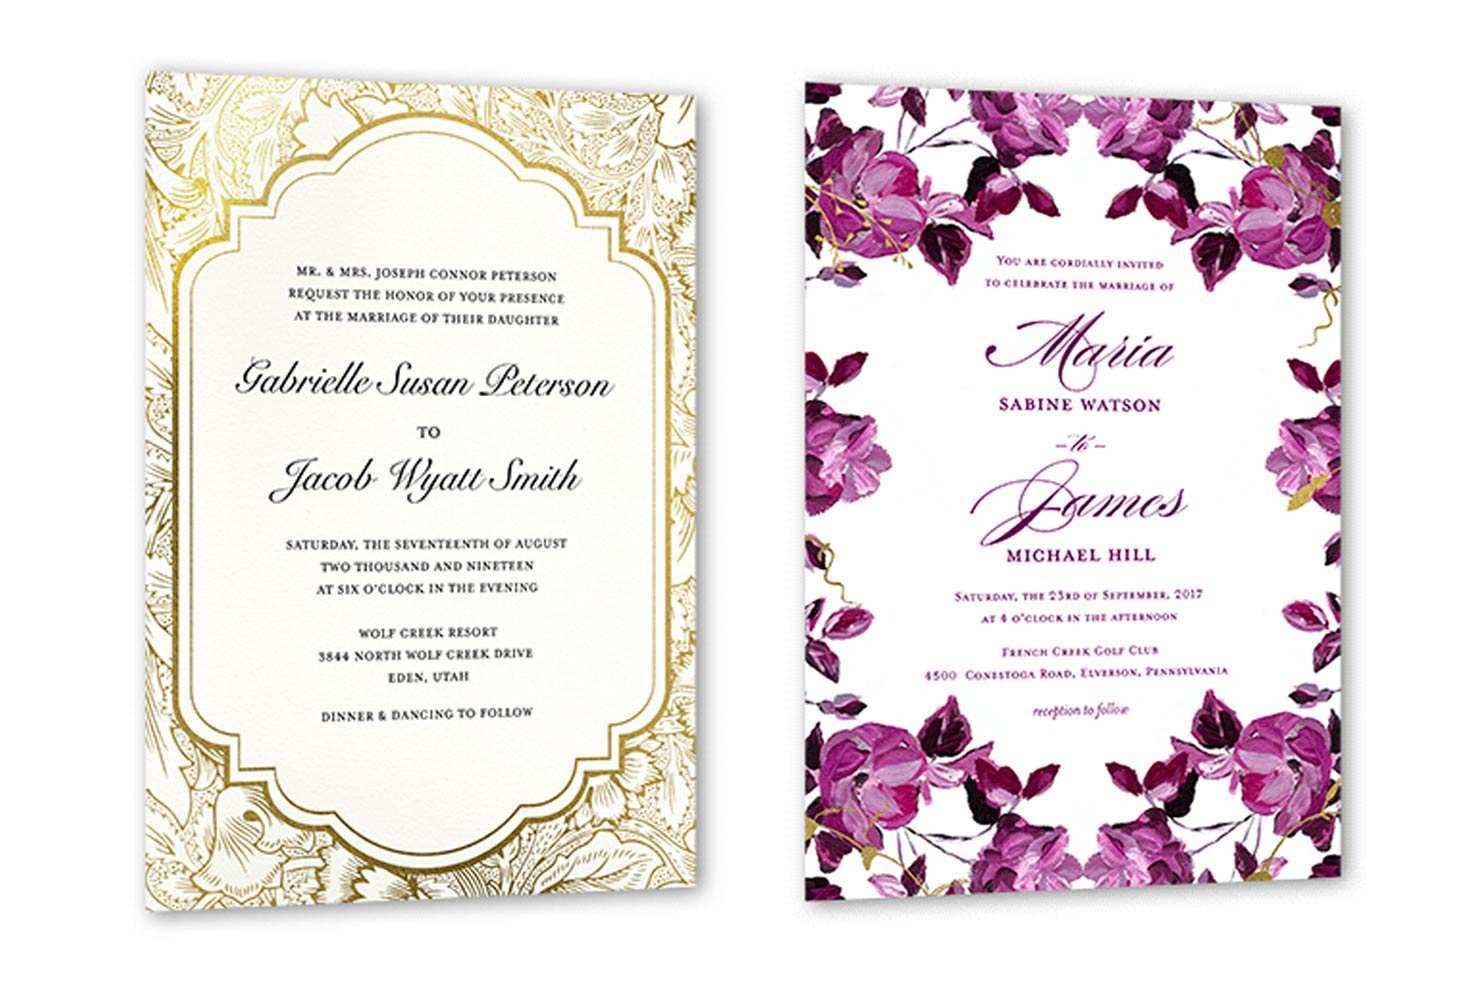 12 Online Card Invitation Example Java With Stunning Design for Card Invitation Example Java